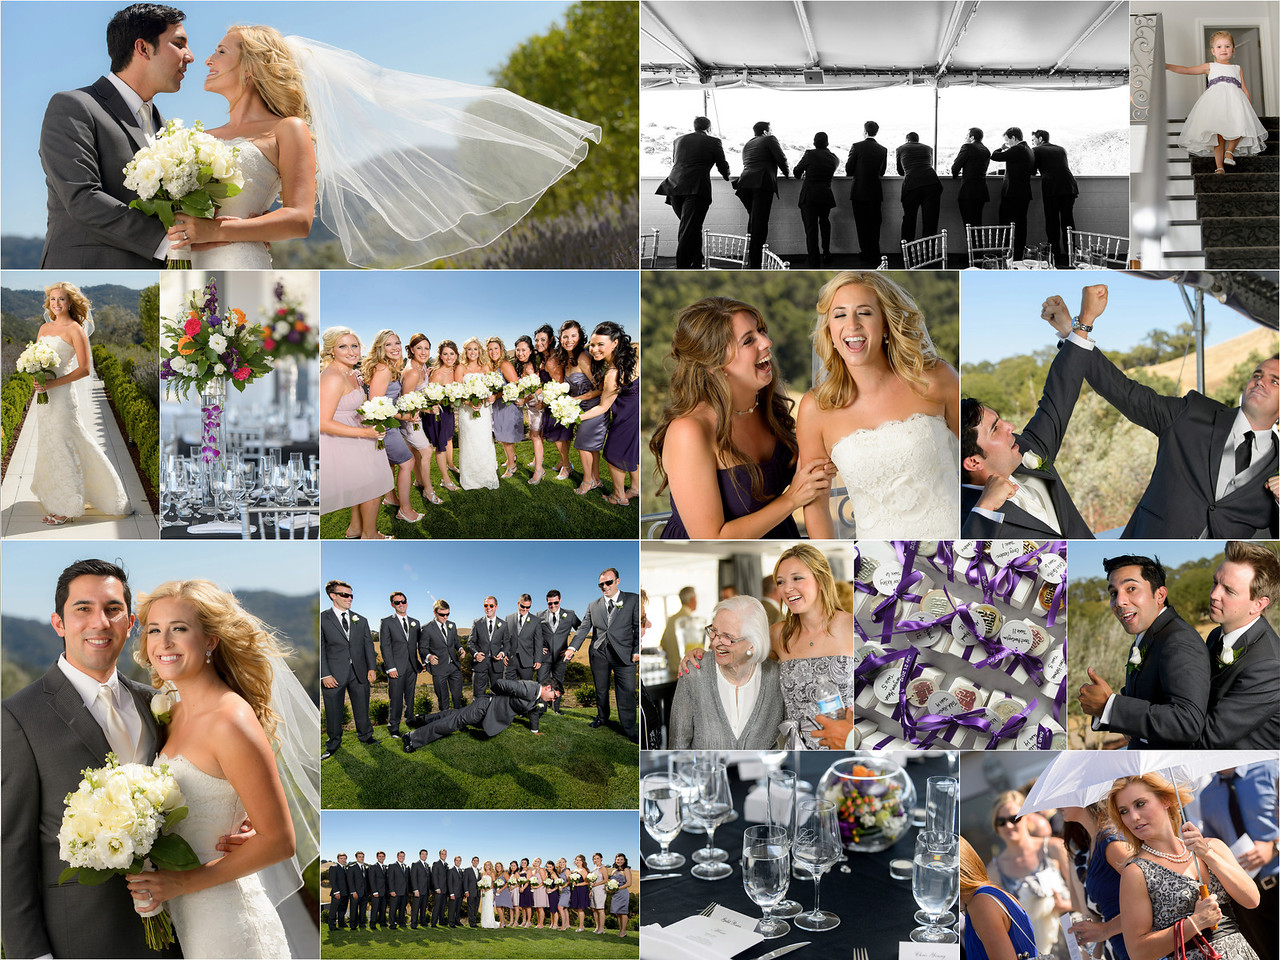 Jamie_and_Greg_Willow_Heights_Mansion_Morgan_Hill_Wedding_Photography_4x6_Photo_Board_04